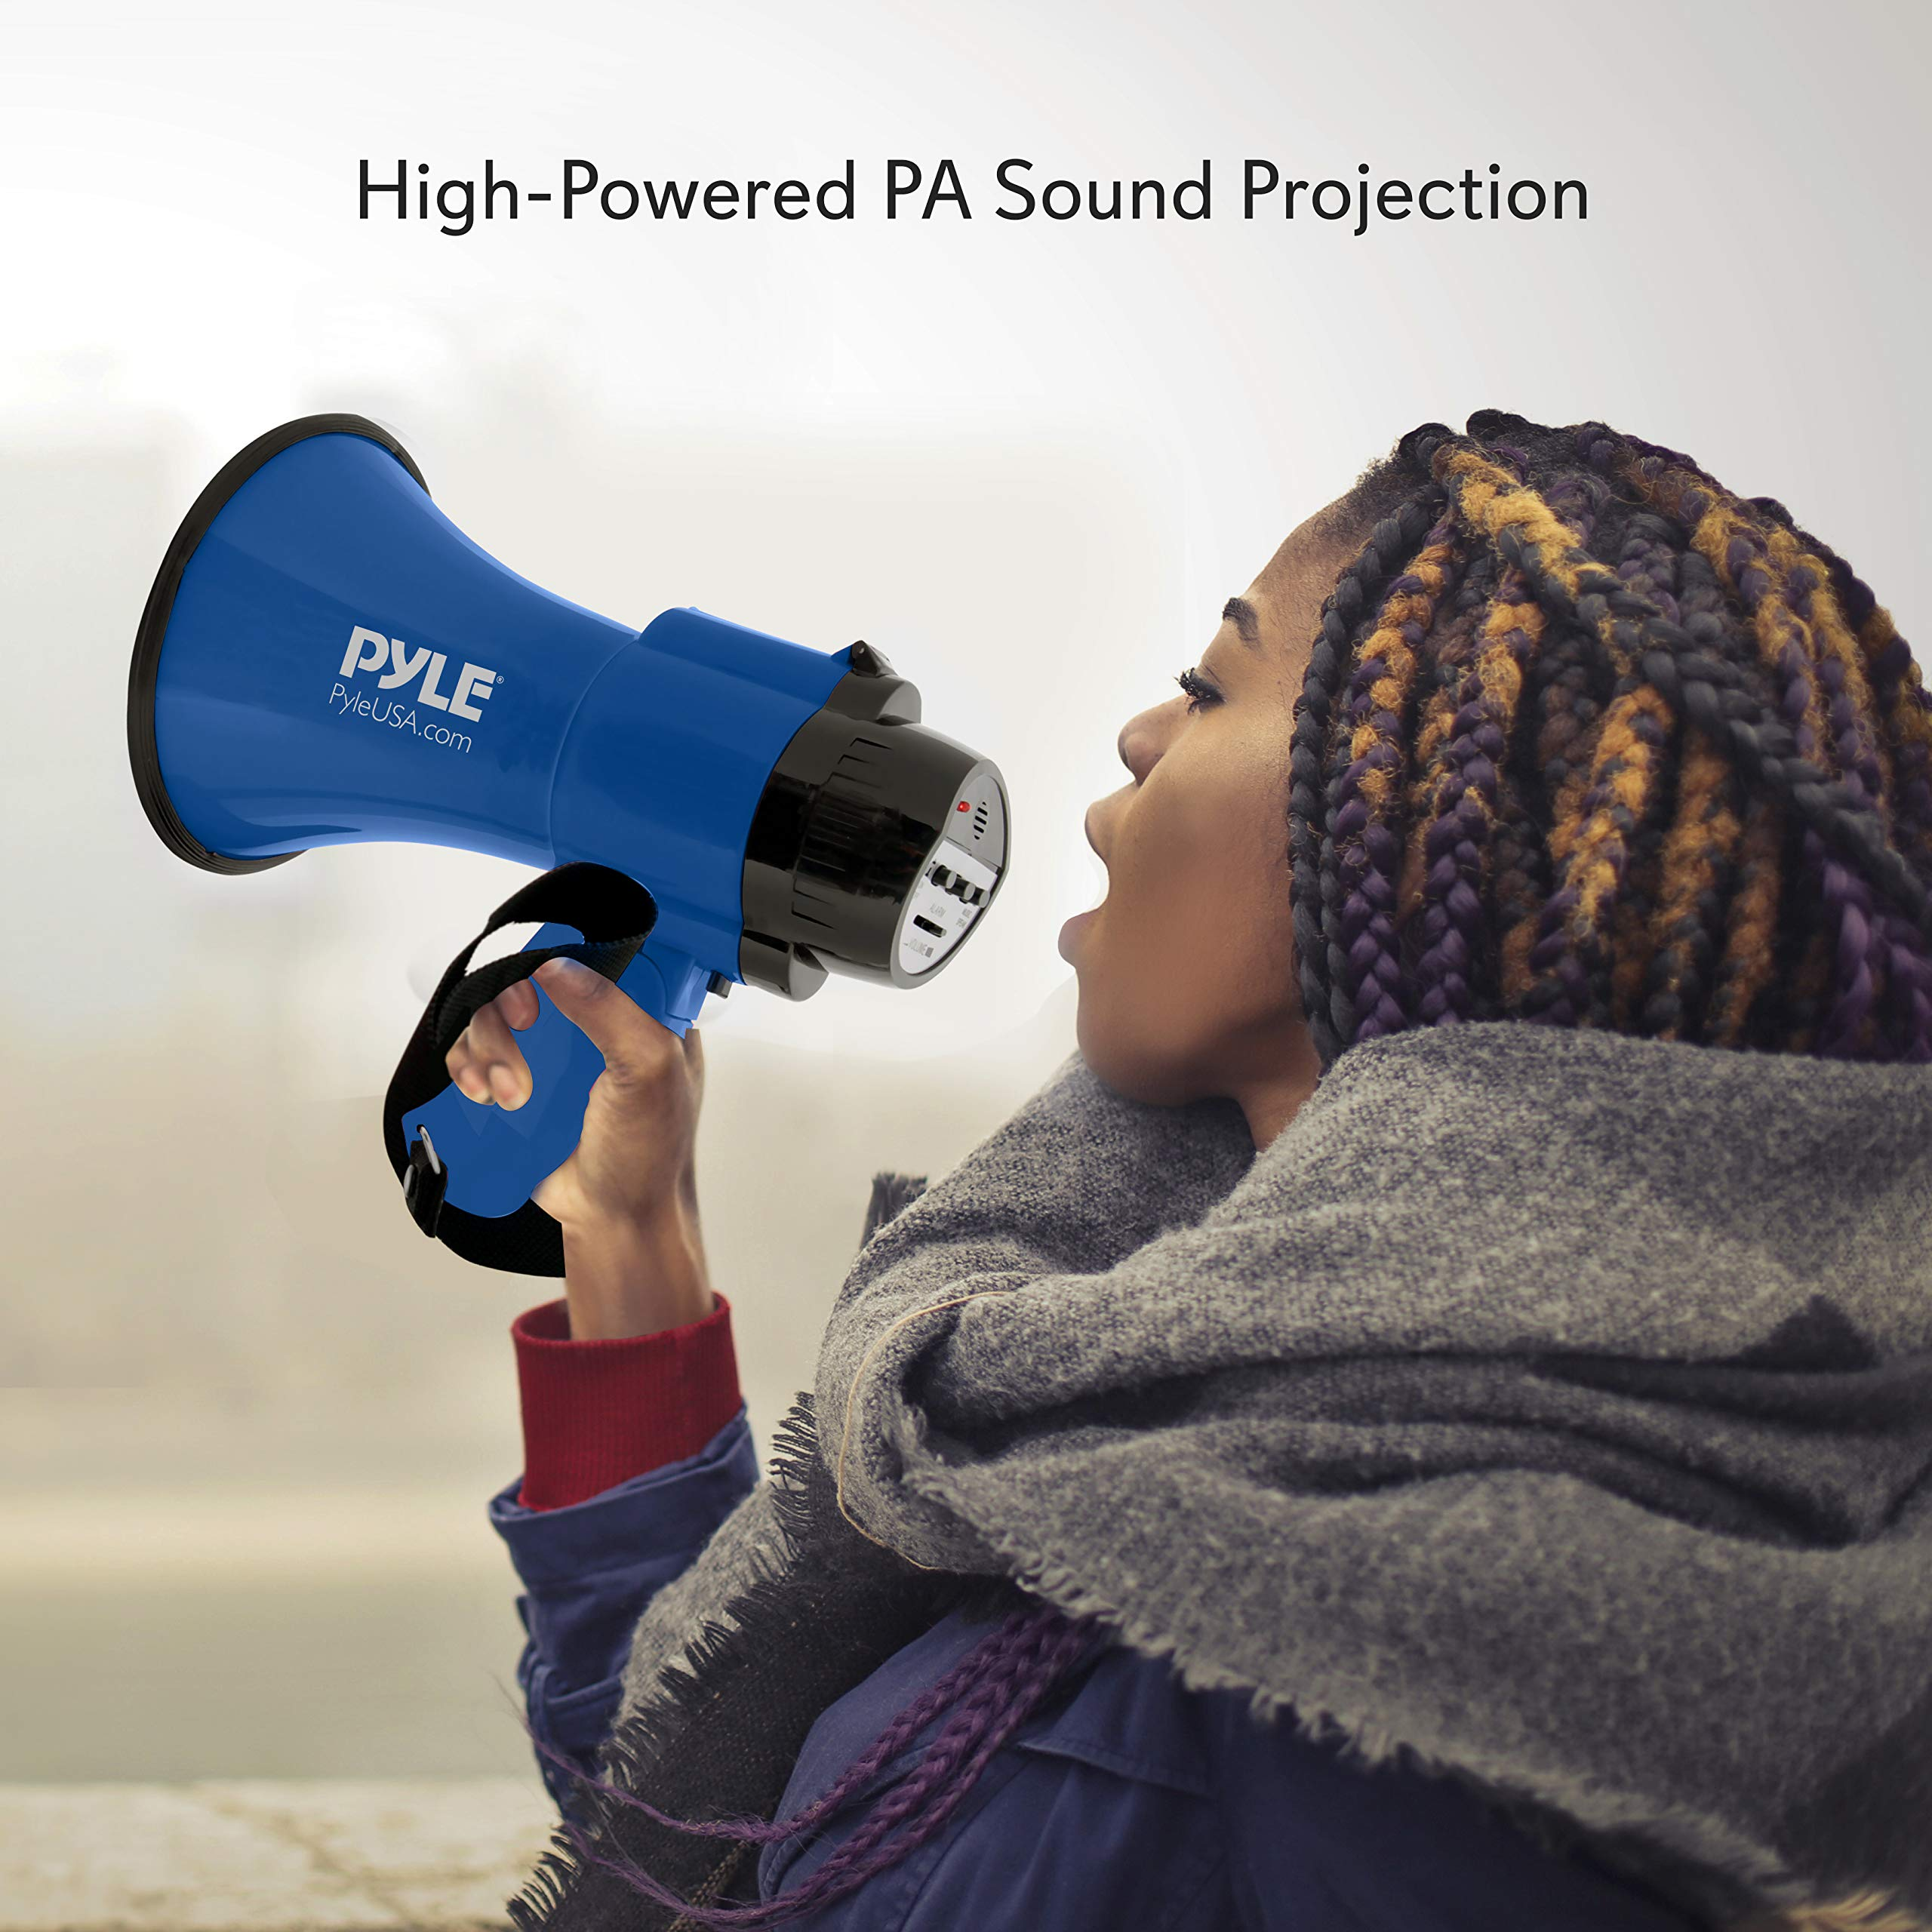 Portable Megaphone Speaker Siren Bullhorn - Compact and Battery Operated with 30 Watt Power, Microphone, 2 Modes, PA Sound and Foldable Handle for Cheerleading and Police Use - Pyle PMP31BL (Blue) by Pyle (Image #6)